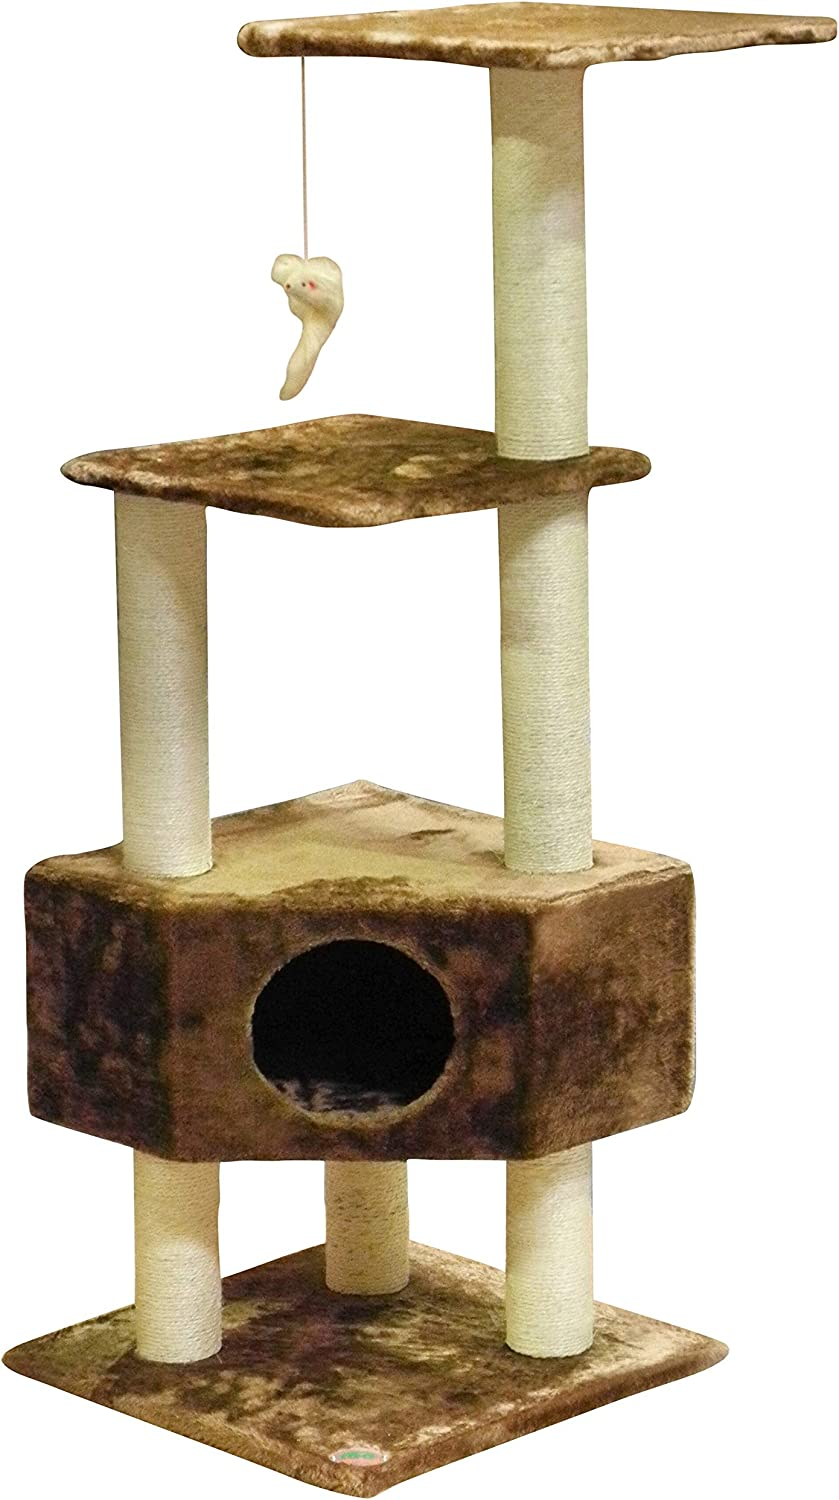 Amazon.com: Go Pet Club - Árbol para gato, Marrón: Mascotas